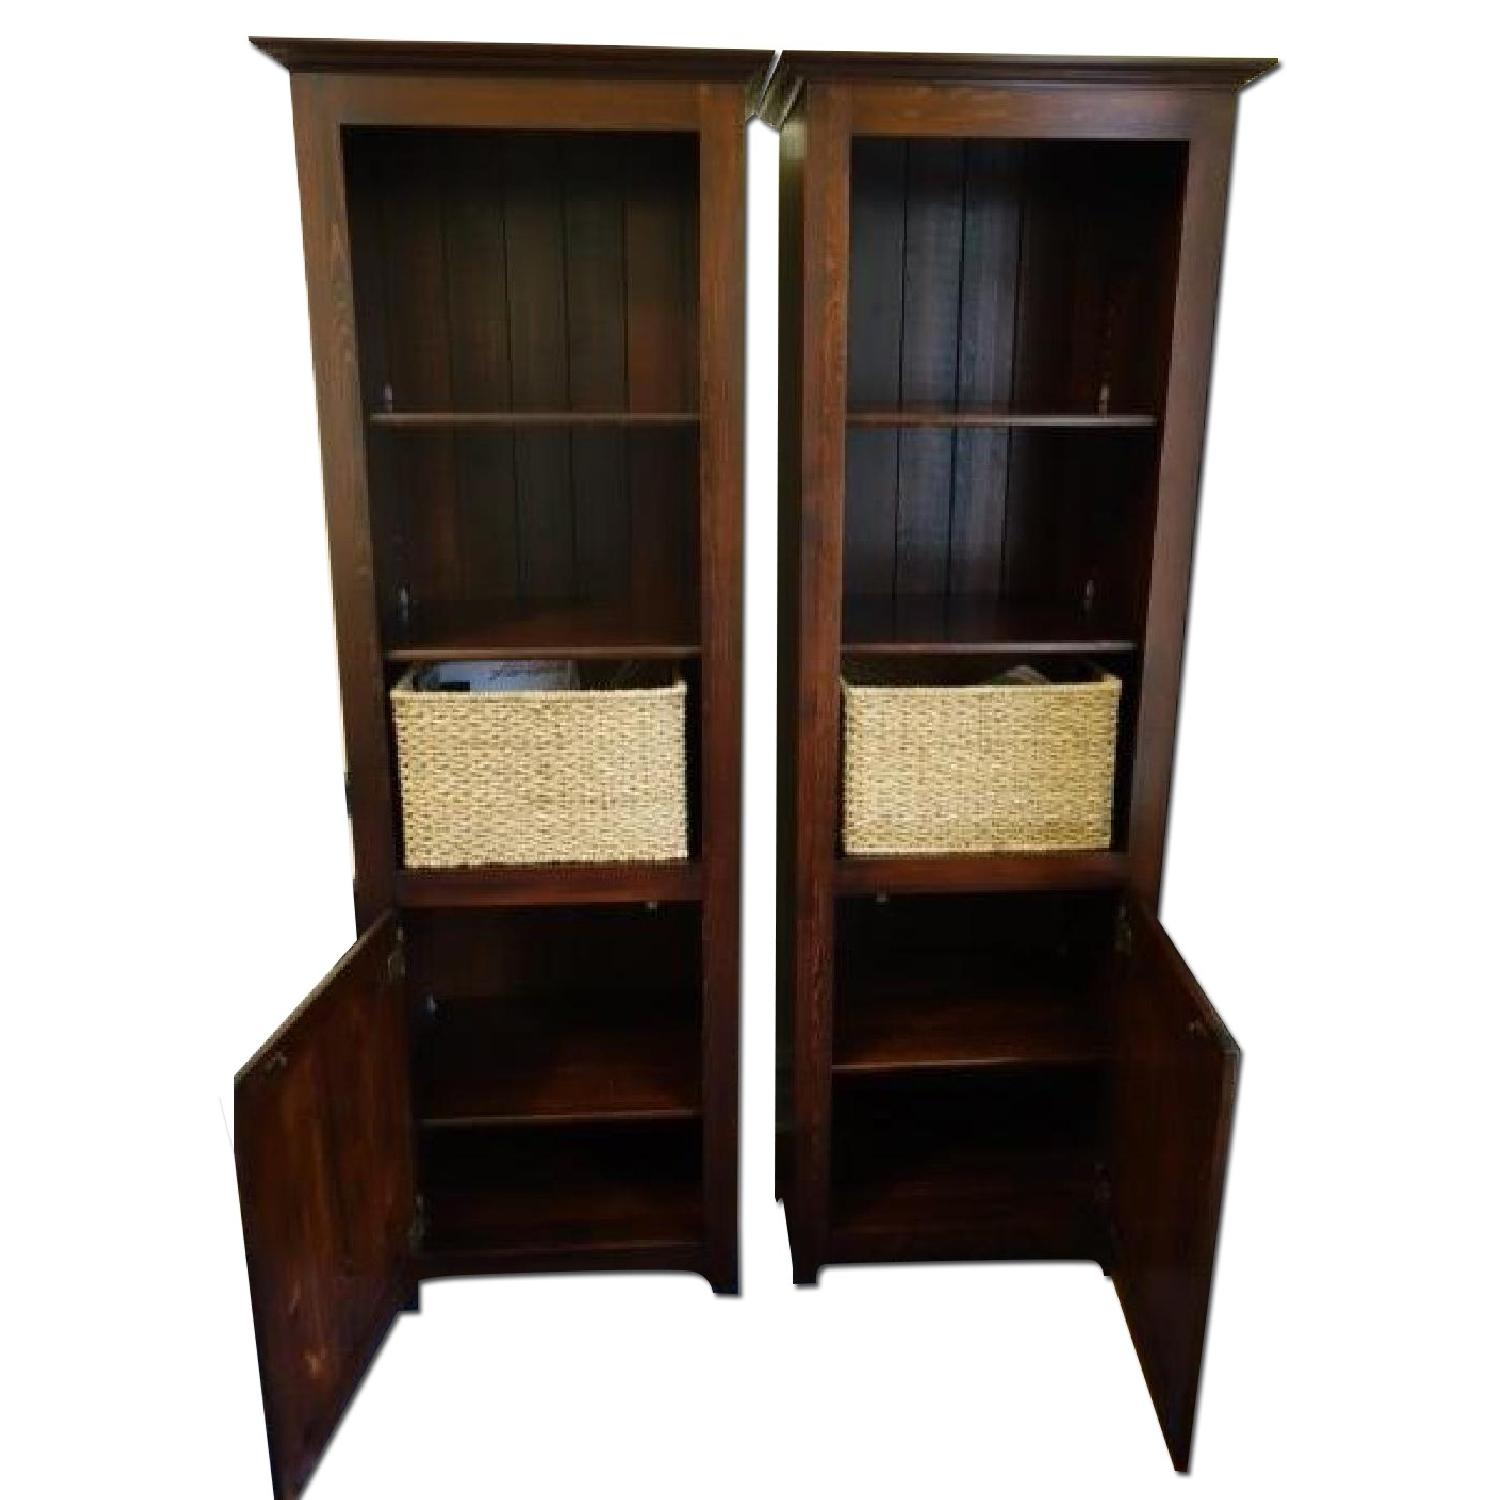 Solid Wood Bookcases - image-0